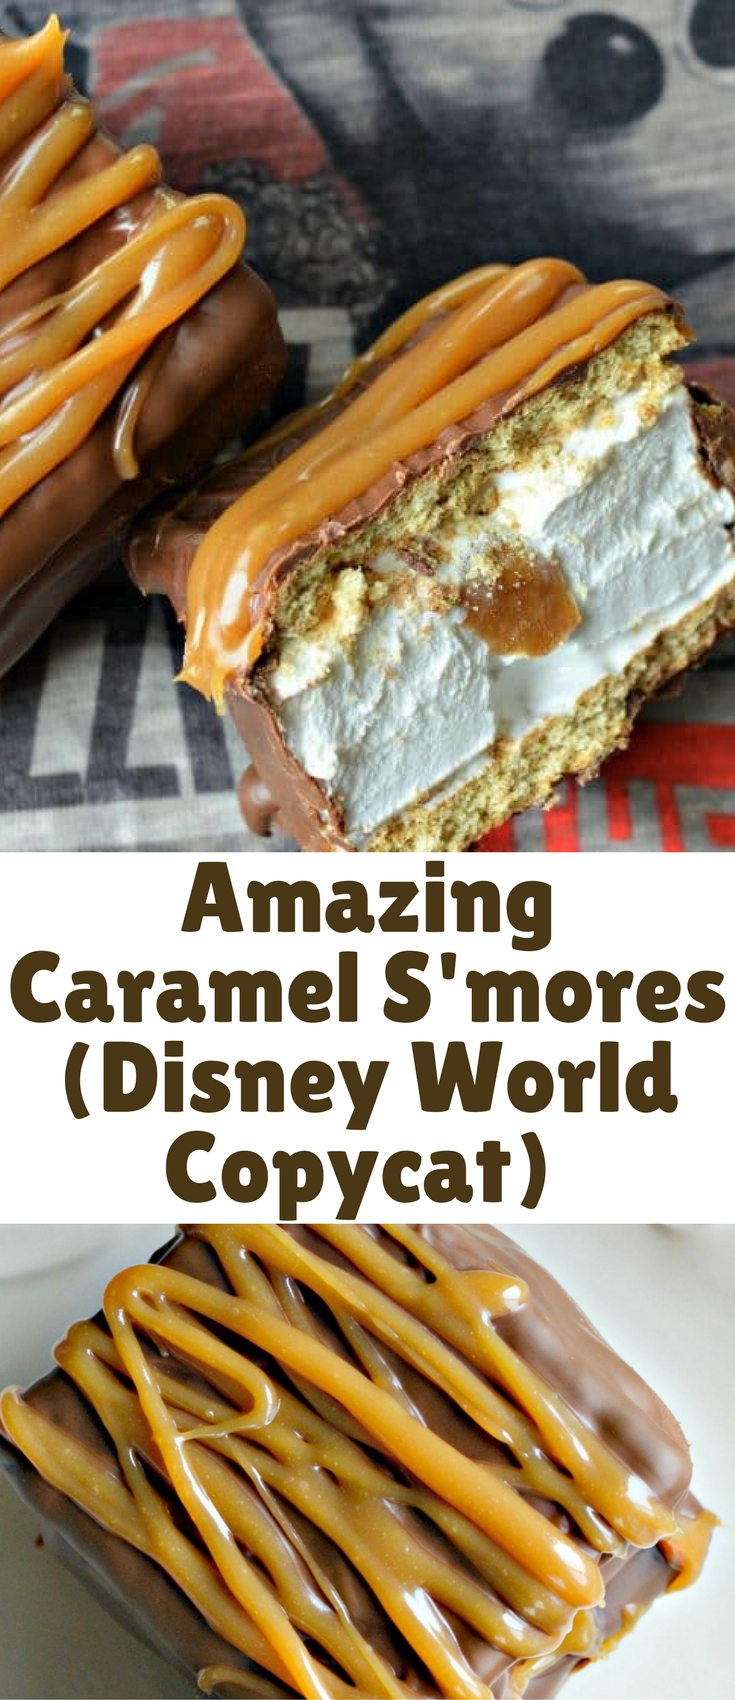 These Caramel S'mores have it all – chocolate, caramel, marshmallow, and graham crackers. Although I definitely recommend the real version that you can get at Karamell-Küche at Epcot in Disney World, if you can't make it soon, you should definitely try these!